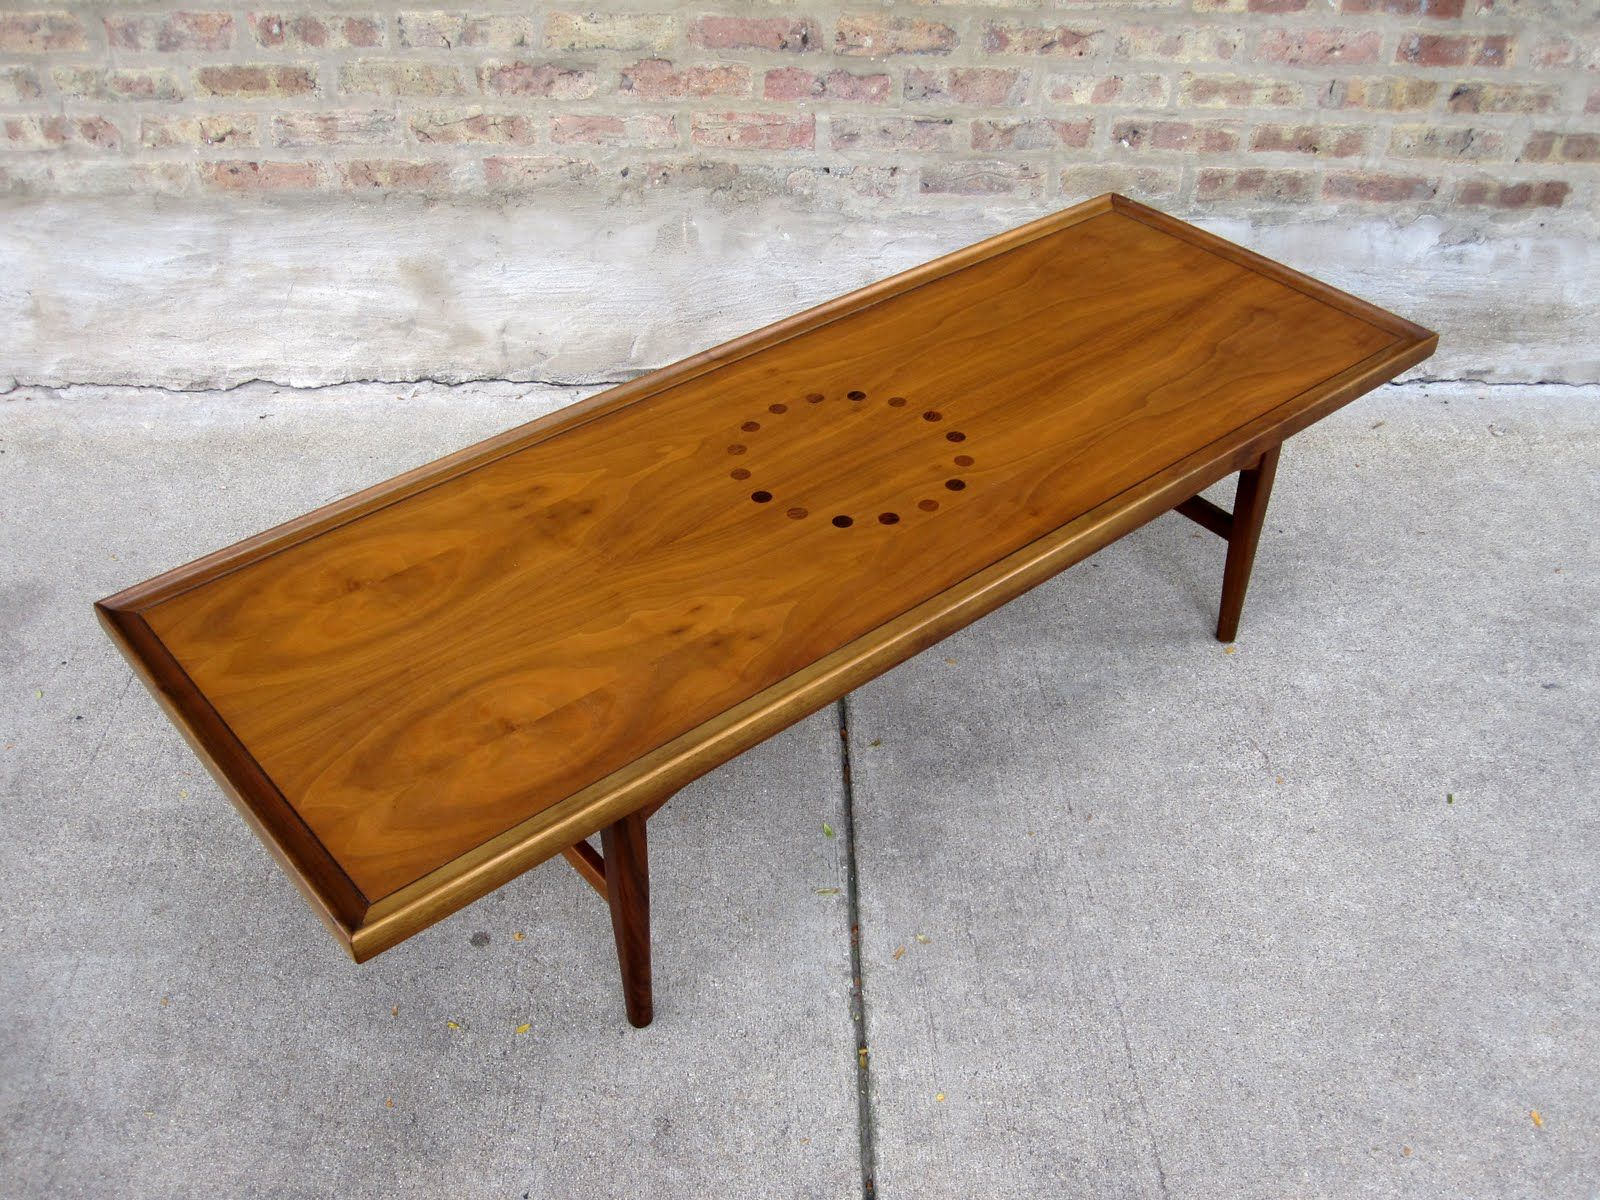 My Drexel Declaration walnut coffee table sets the long and lean